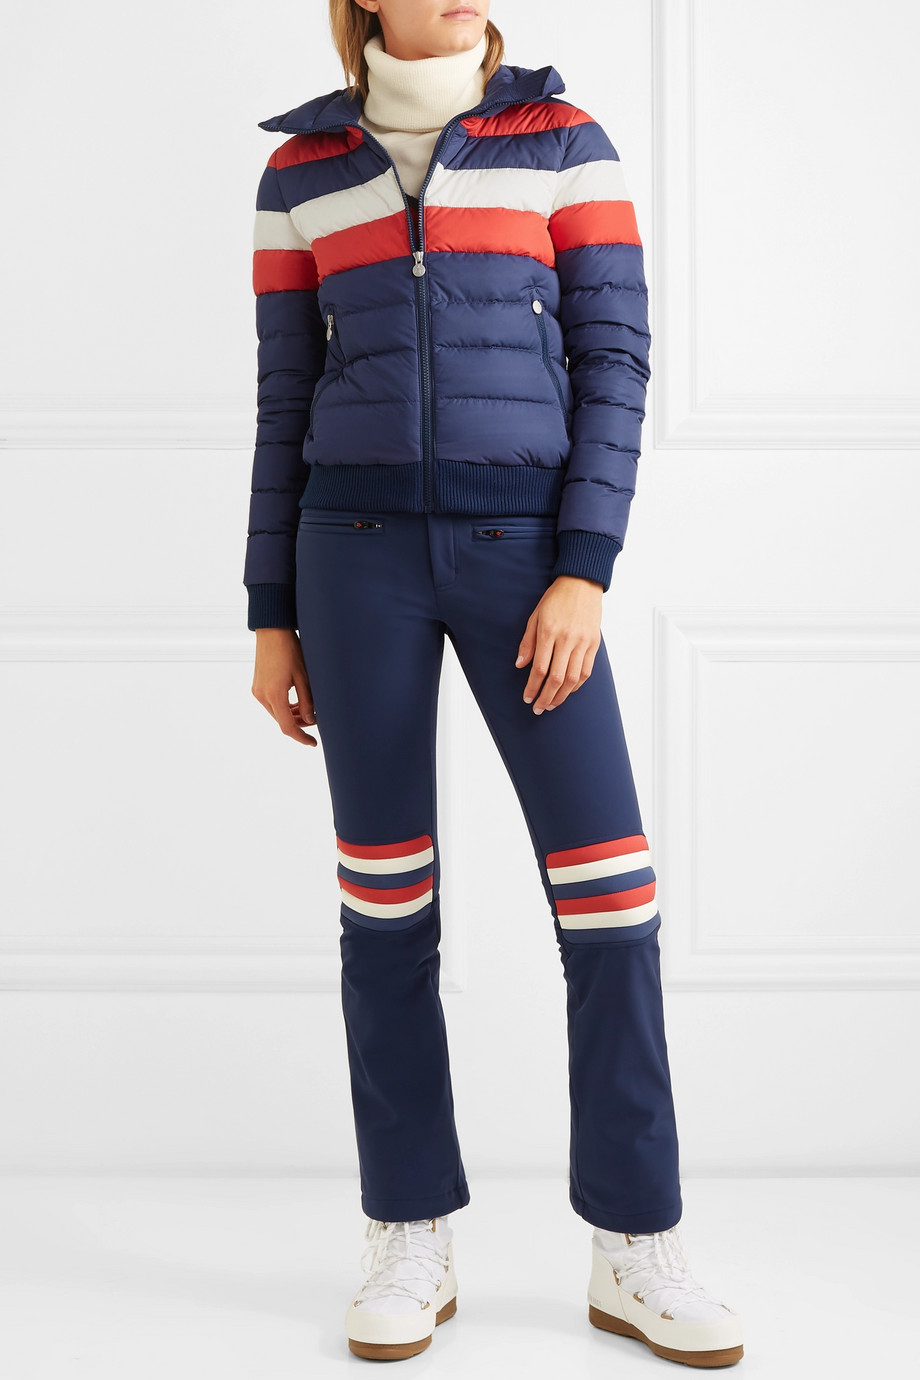 Perfect Moment Queenie striped quilted down jacket